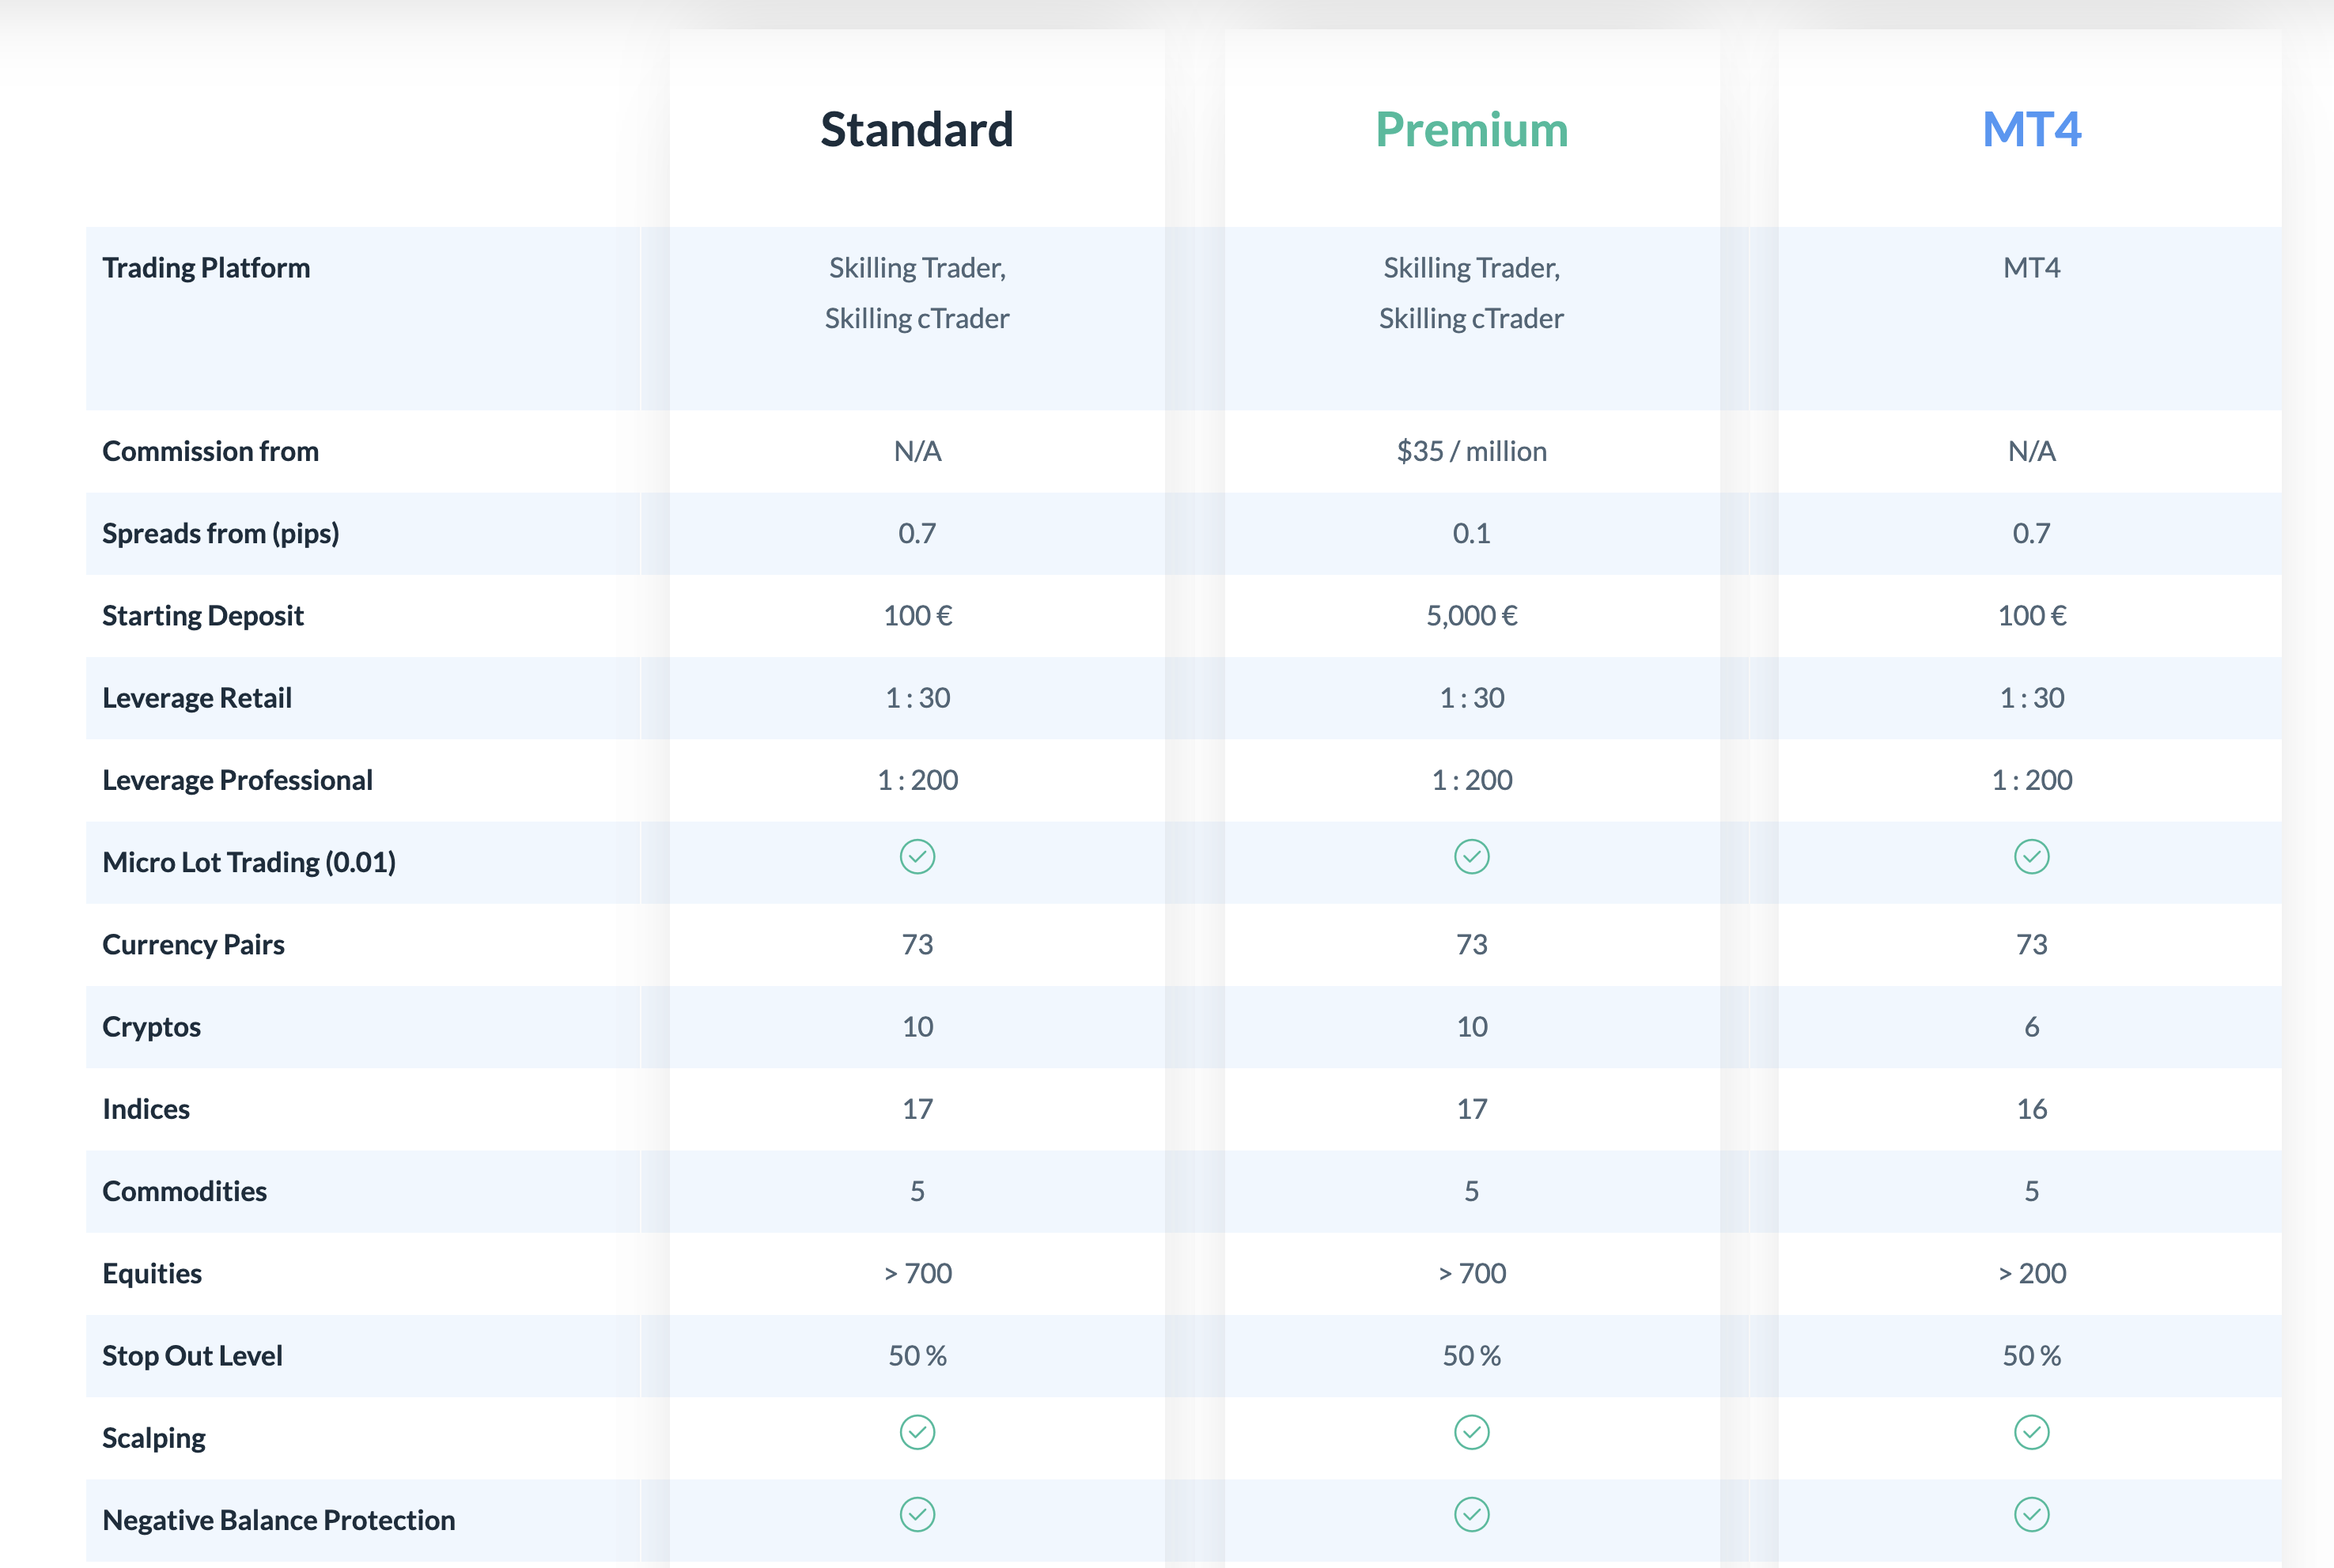 Comparison of Skilling Account Types